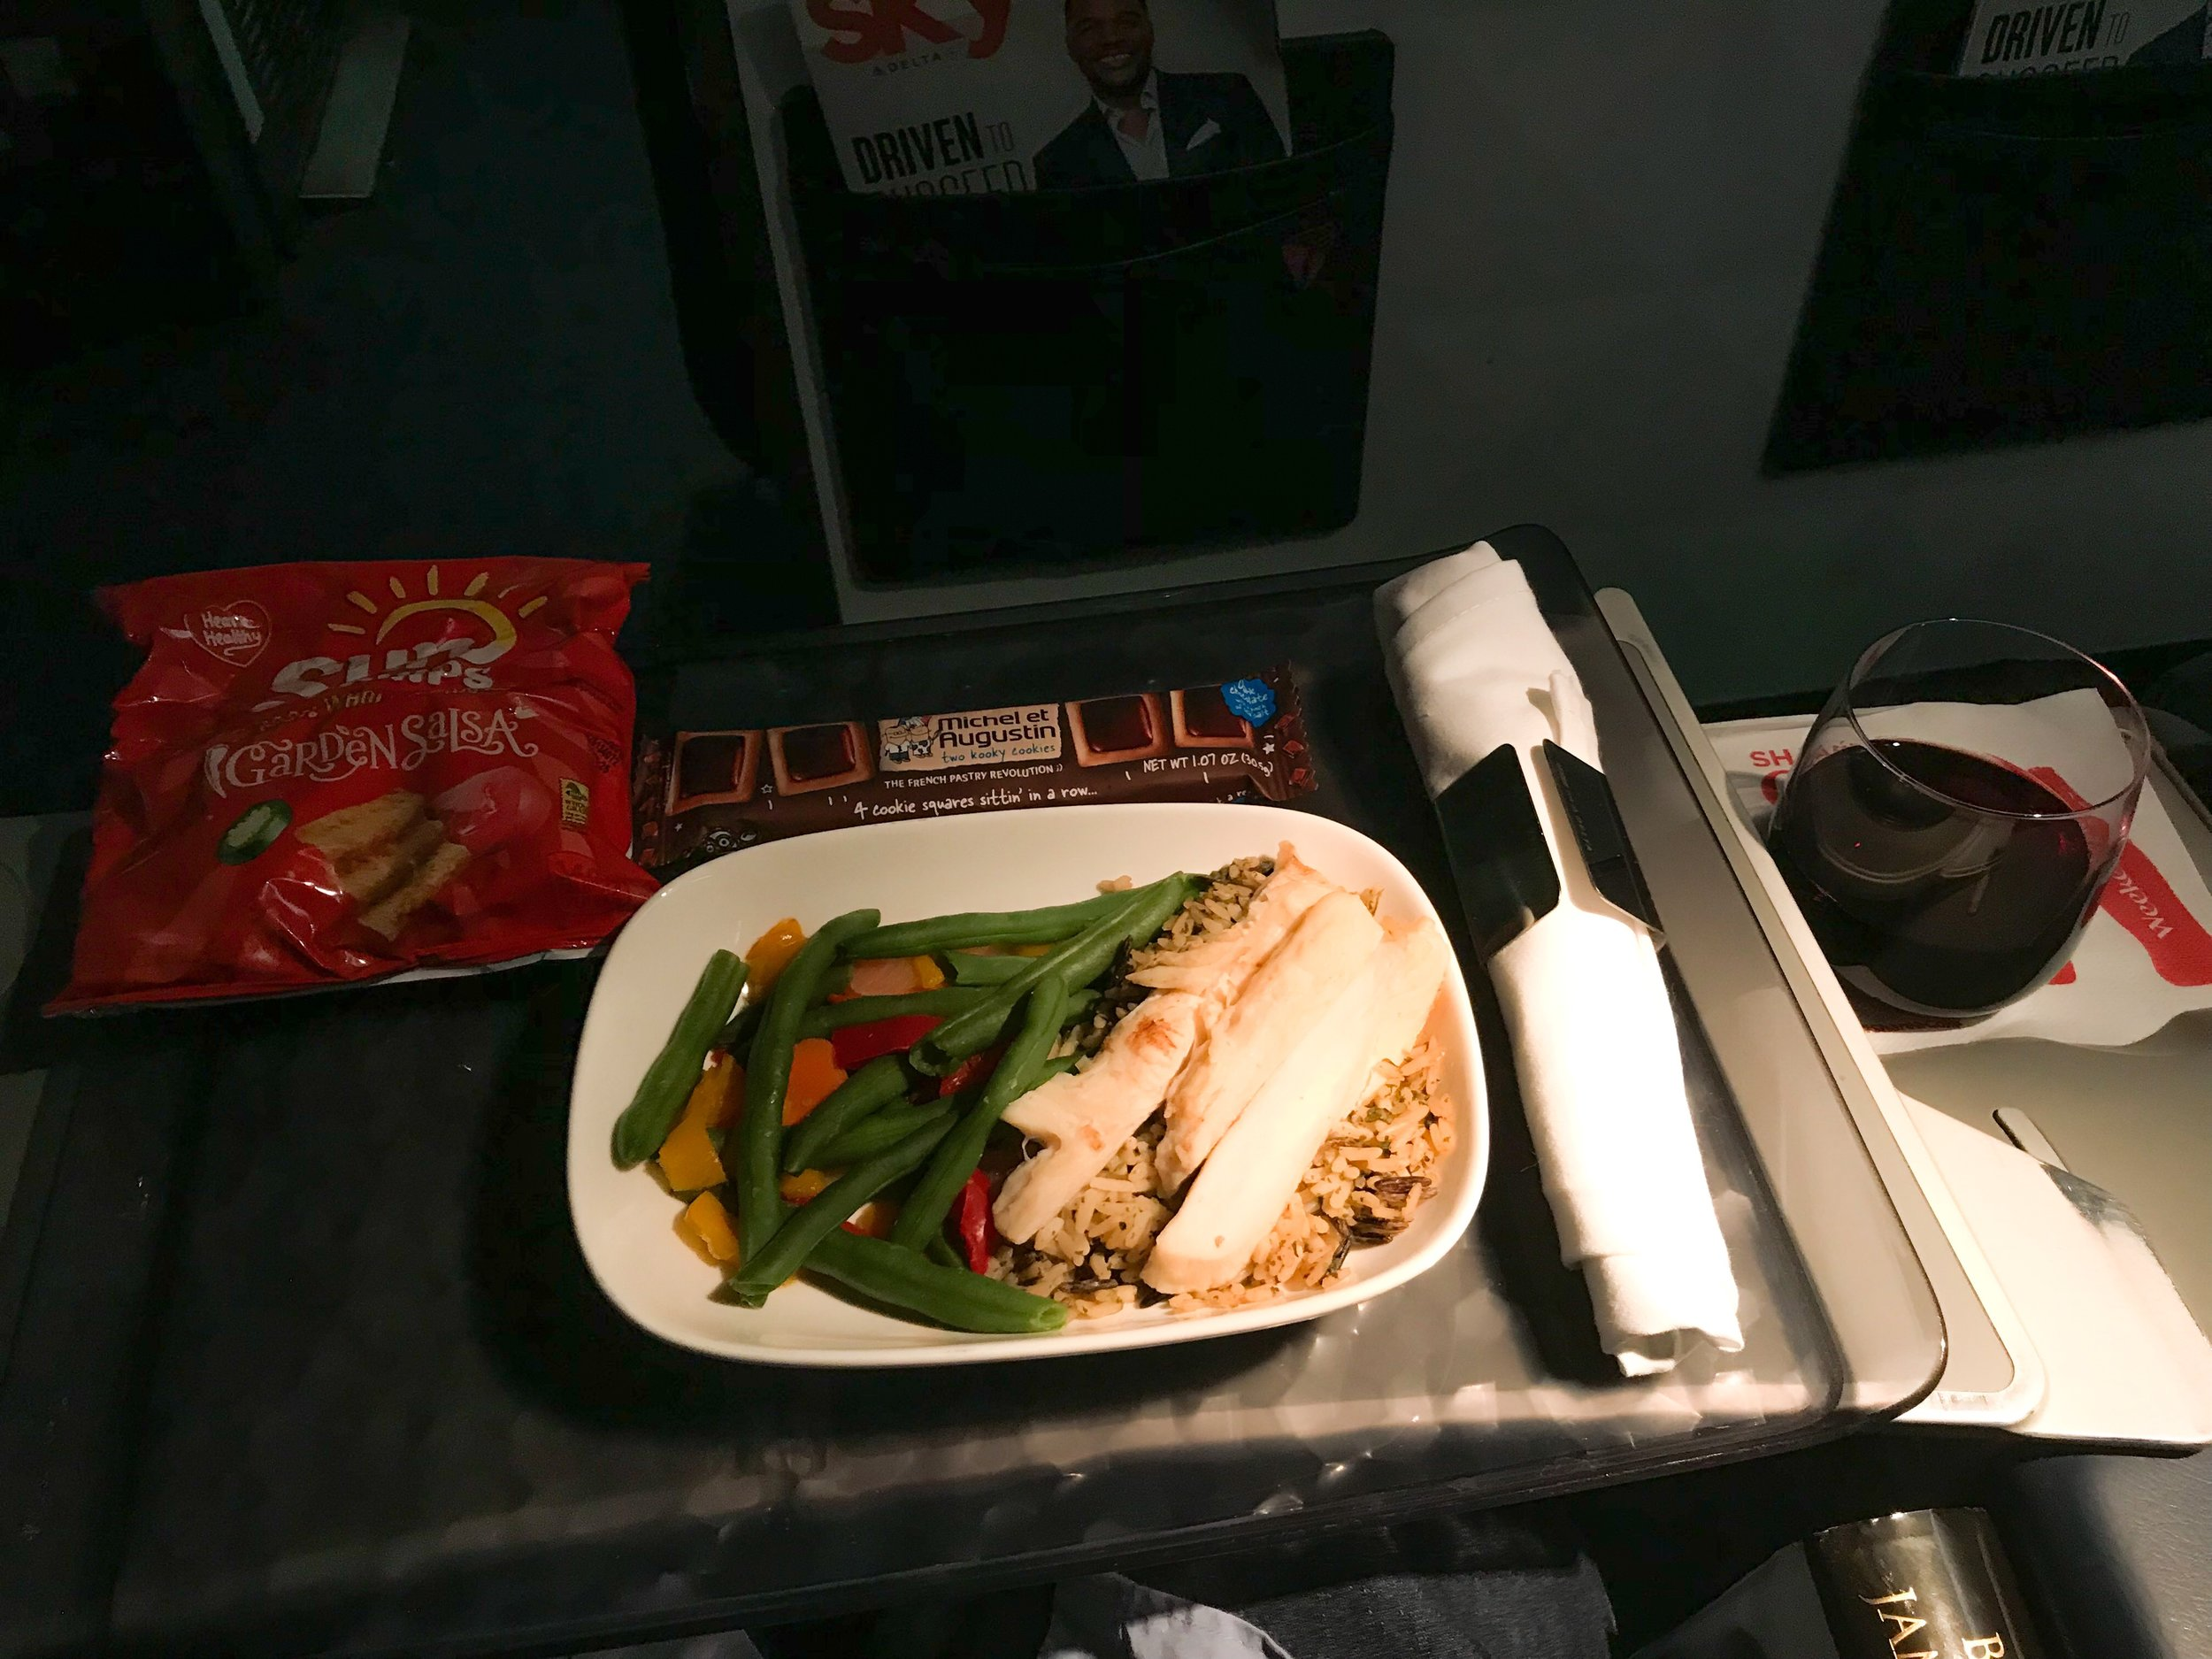 Meals on the ERJ-175 are not as robust as on Mainline Delta flights, due to the smaller galley. There are typically two meal options - sometimes offered from the front of the cabin to the back, and sometimes opposite. There is really no way of predicting where they will start, so be prepared to only have one choice if you're in Row 1 and they start in the back.